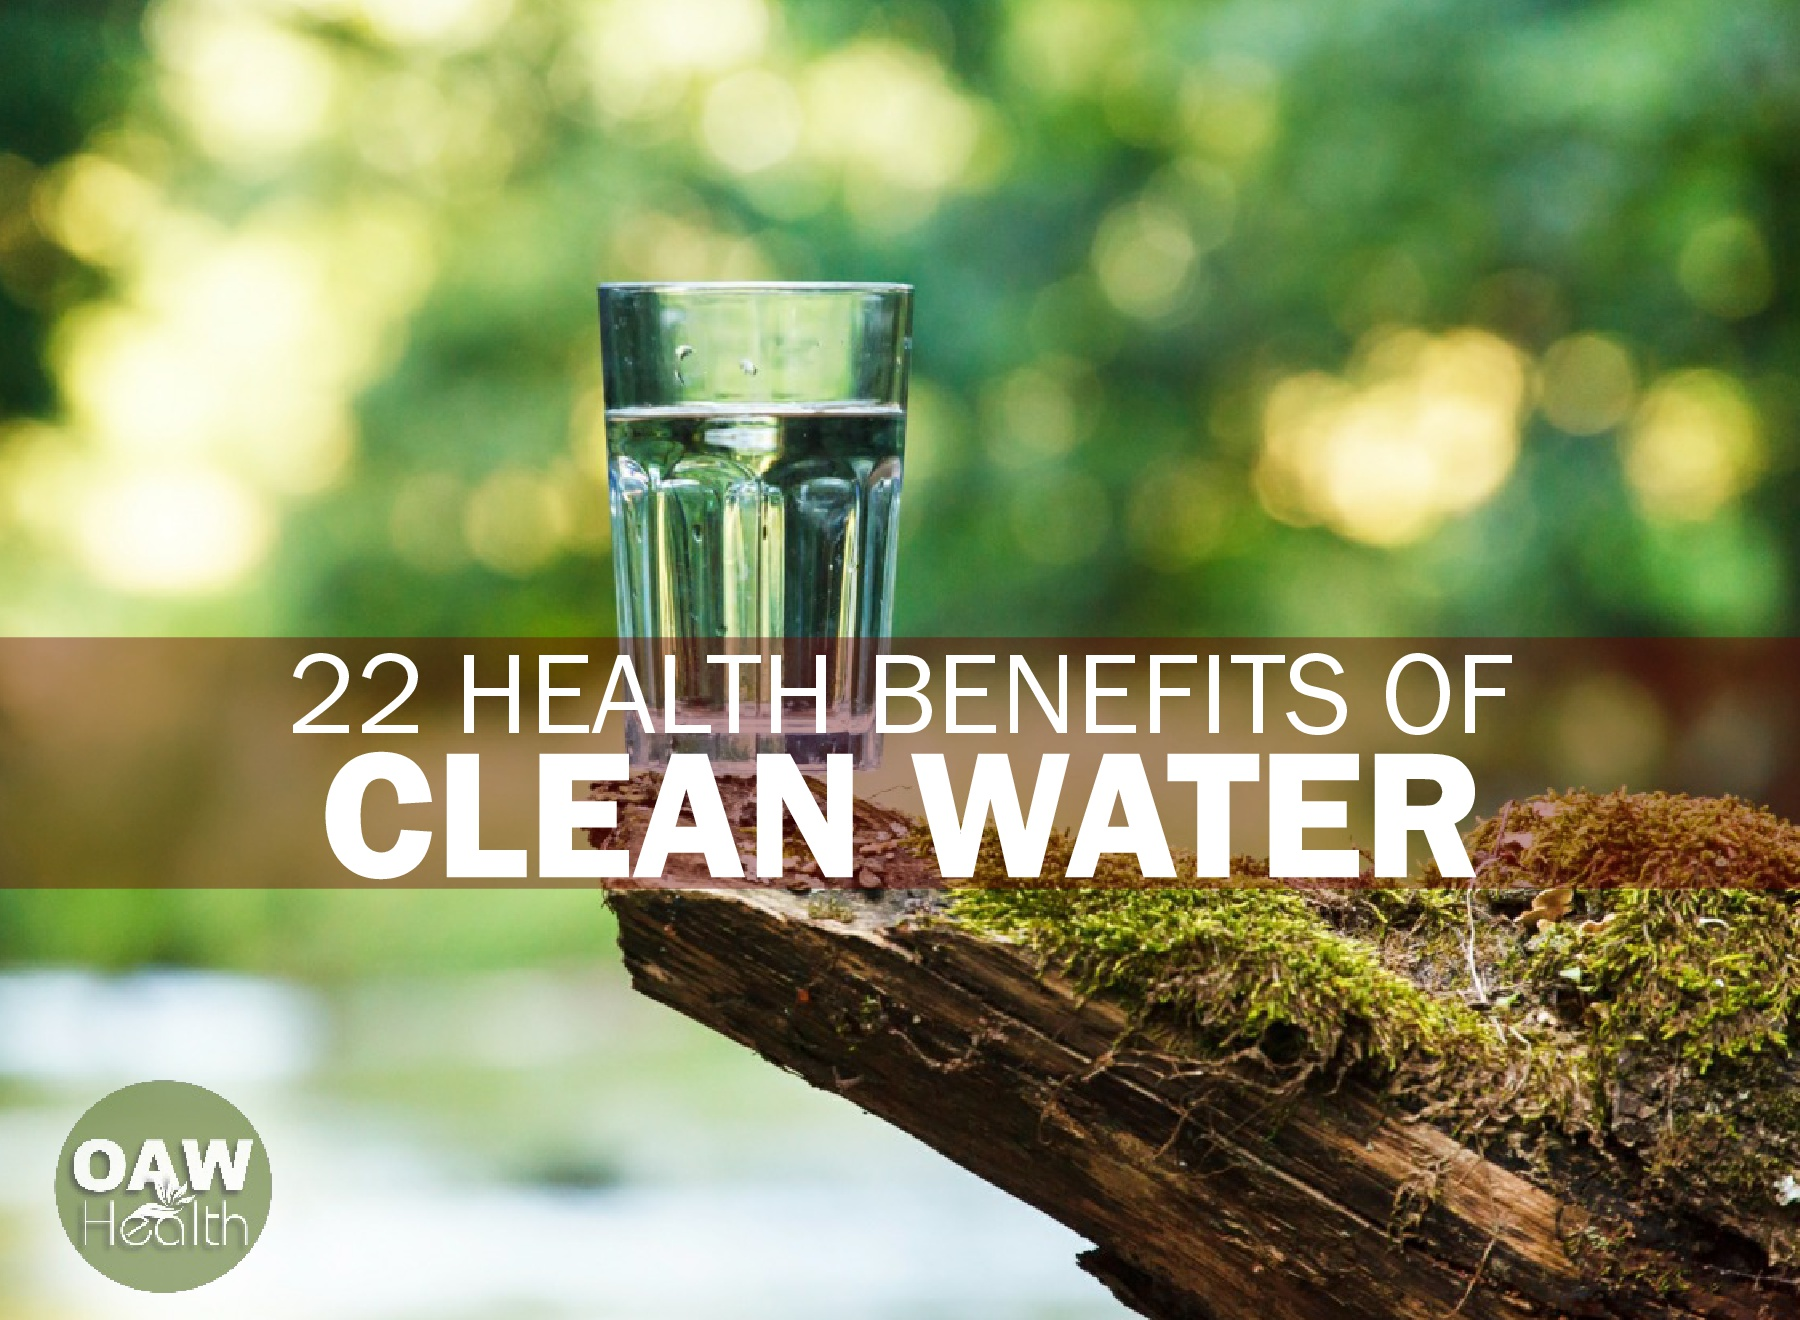 22 Health Benefits of Clean Water